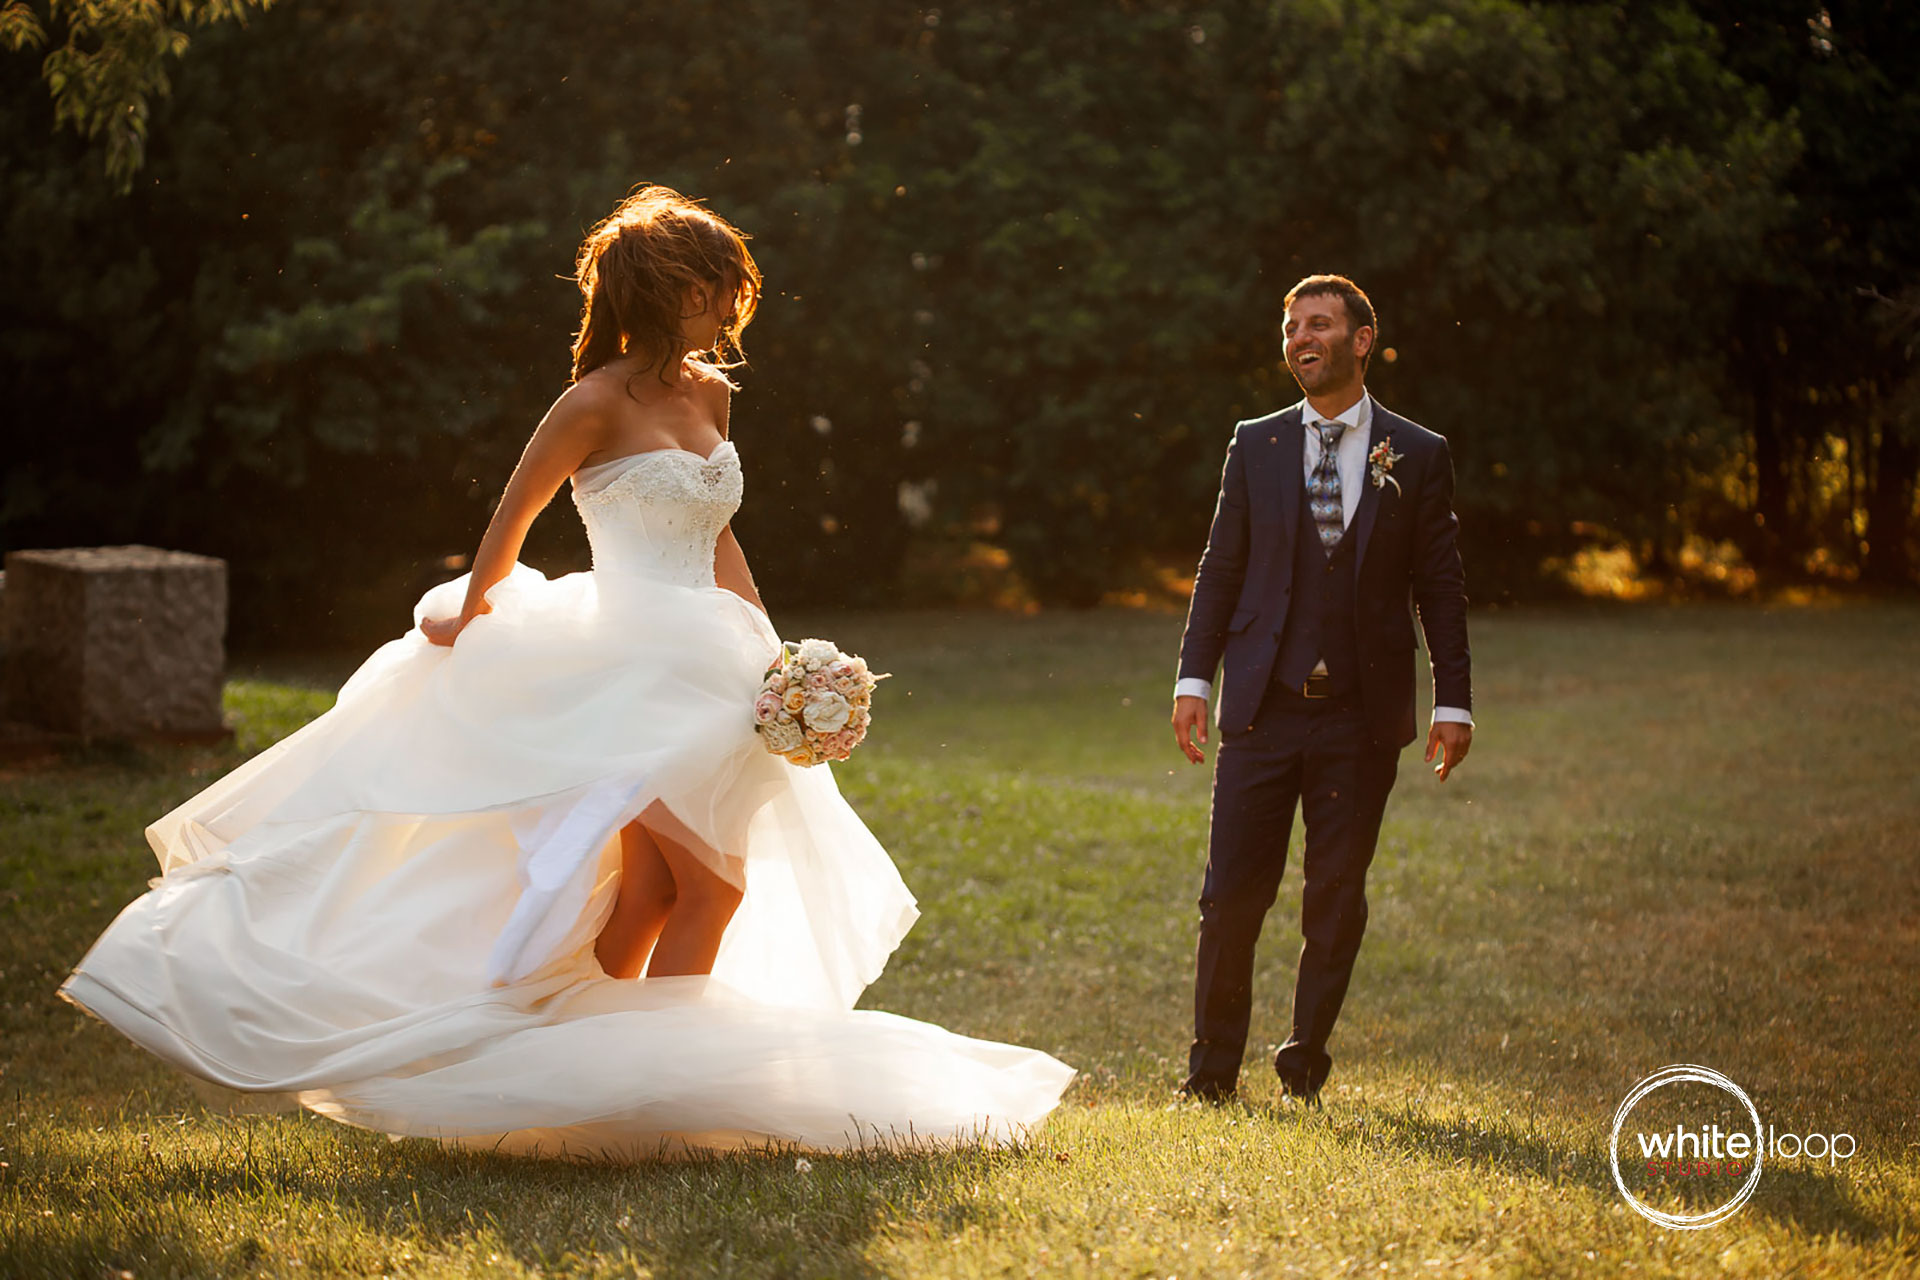 The bride and groom in an Italian landscape that describes the happiness between the two lovers.